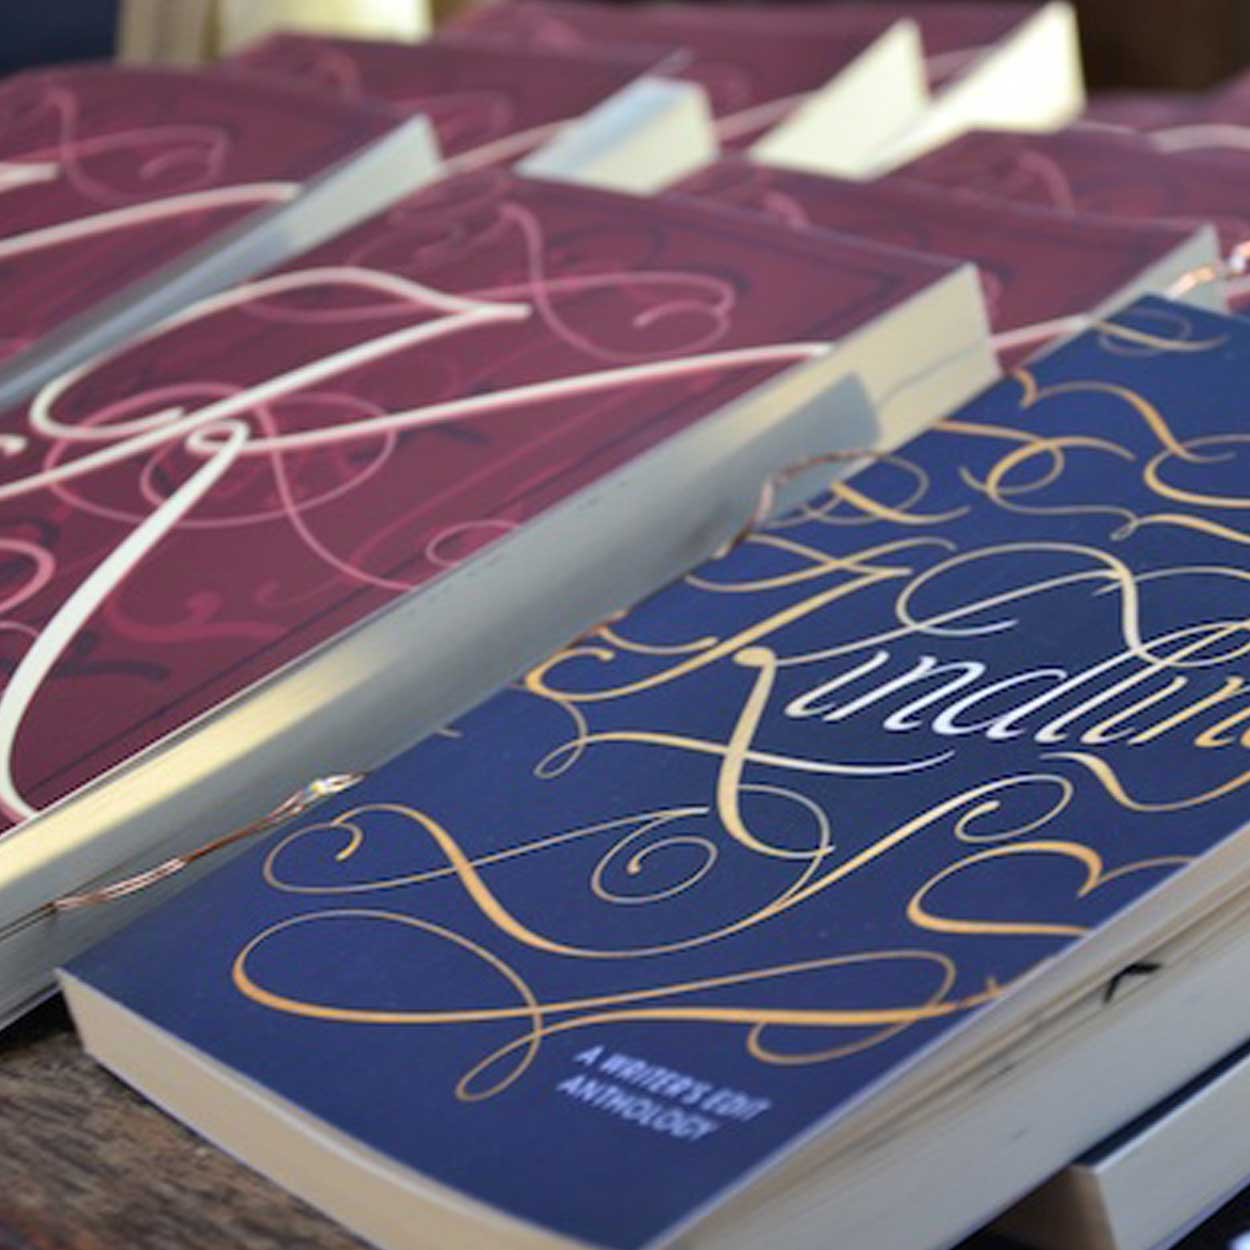 "Writer's Edit Press  is an online literary magazine and small press from Sydney. ""We publish writing advice, industry features, author interviews and more on our website, as well as fiction, non-fiction and poetry in our annual print creative writing anthology ' Kindling '. At the time of the fair, we'll be seeking submissions for  Kindling Volume III . Both our site and small press support emerging writers from all walks of life"".  Find out more here."